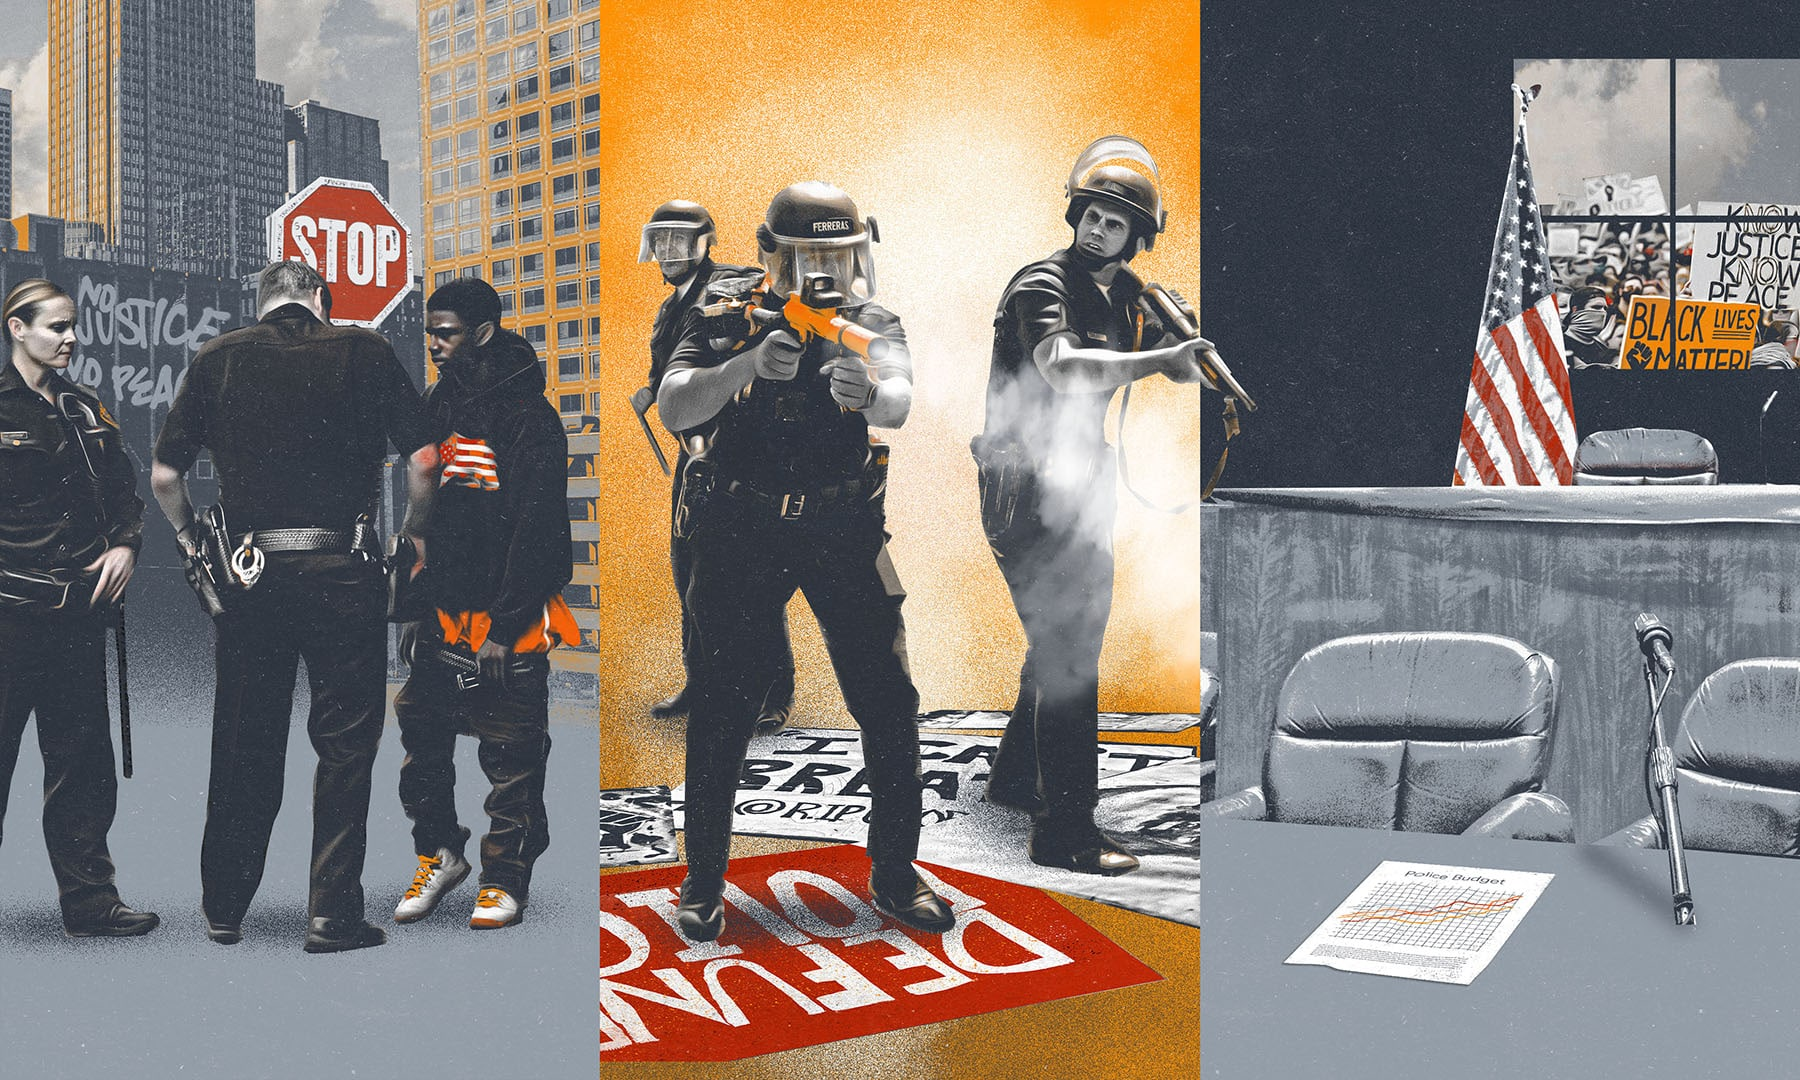 Max-o-matic: The Guardian: Police Brutality